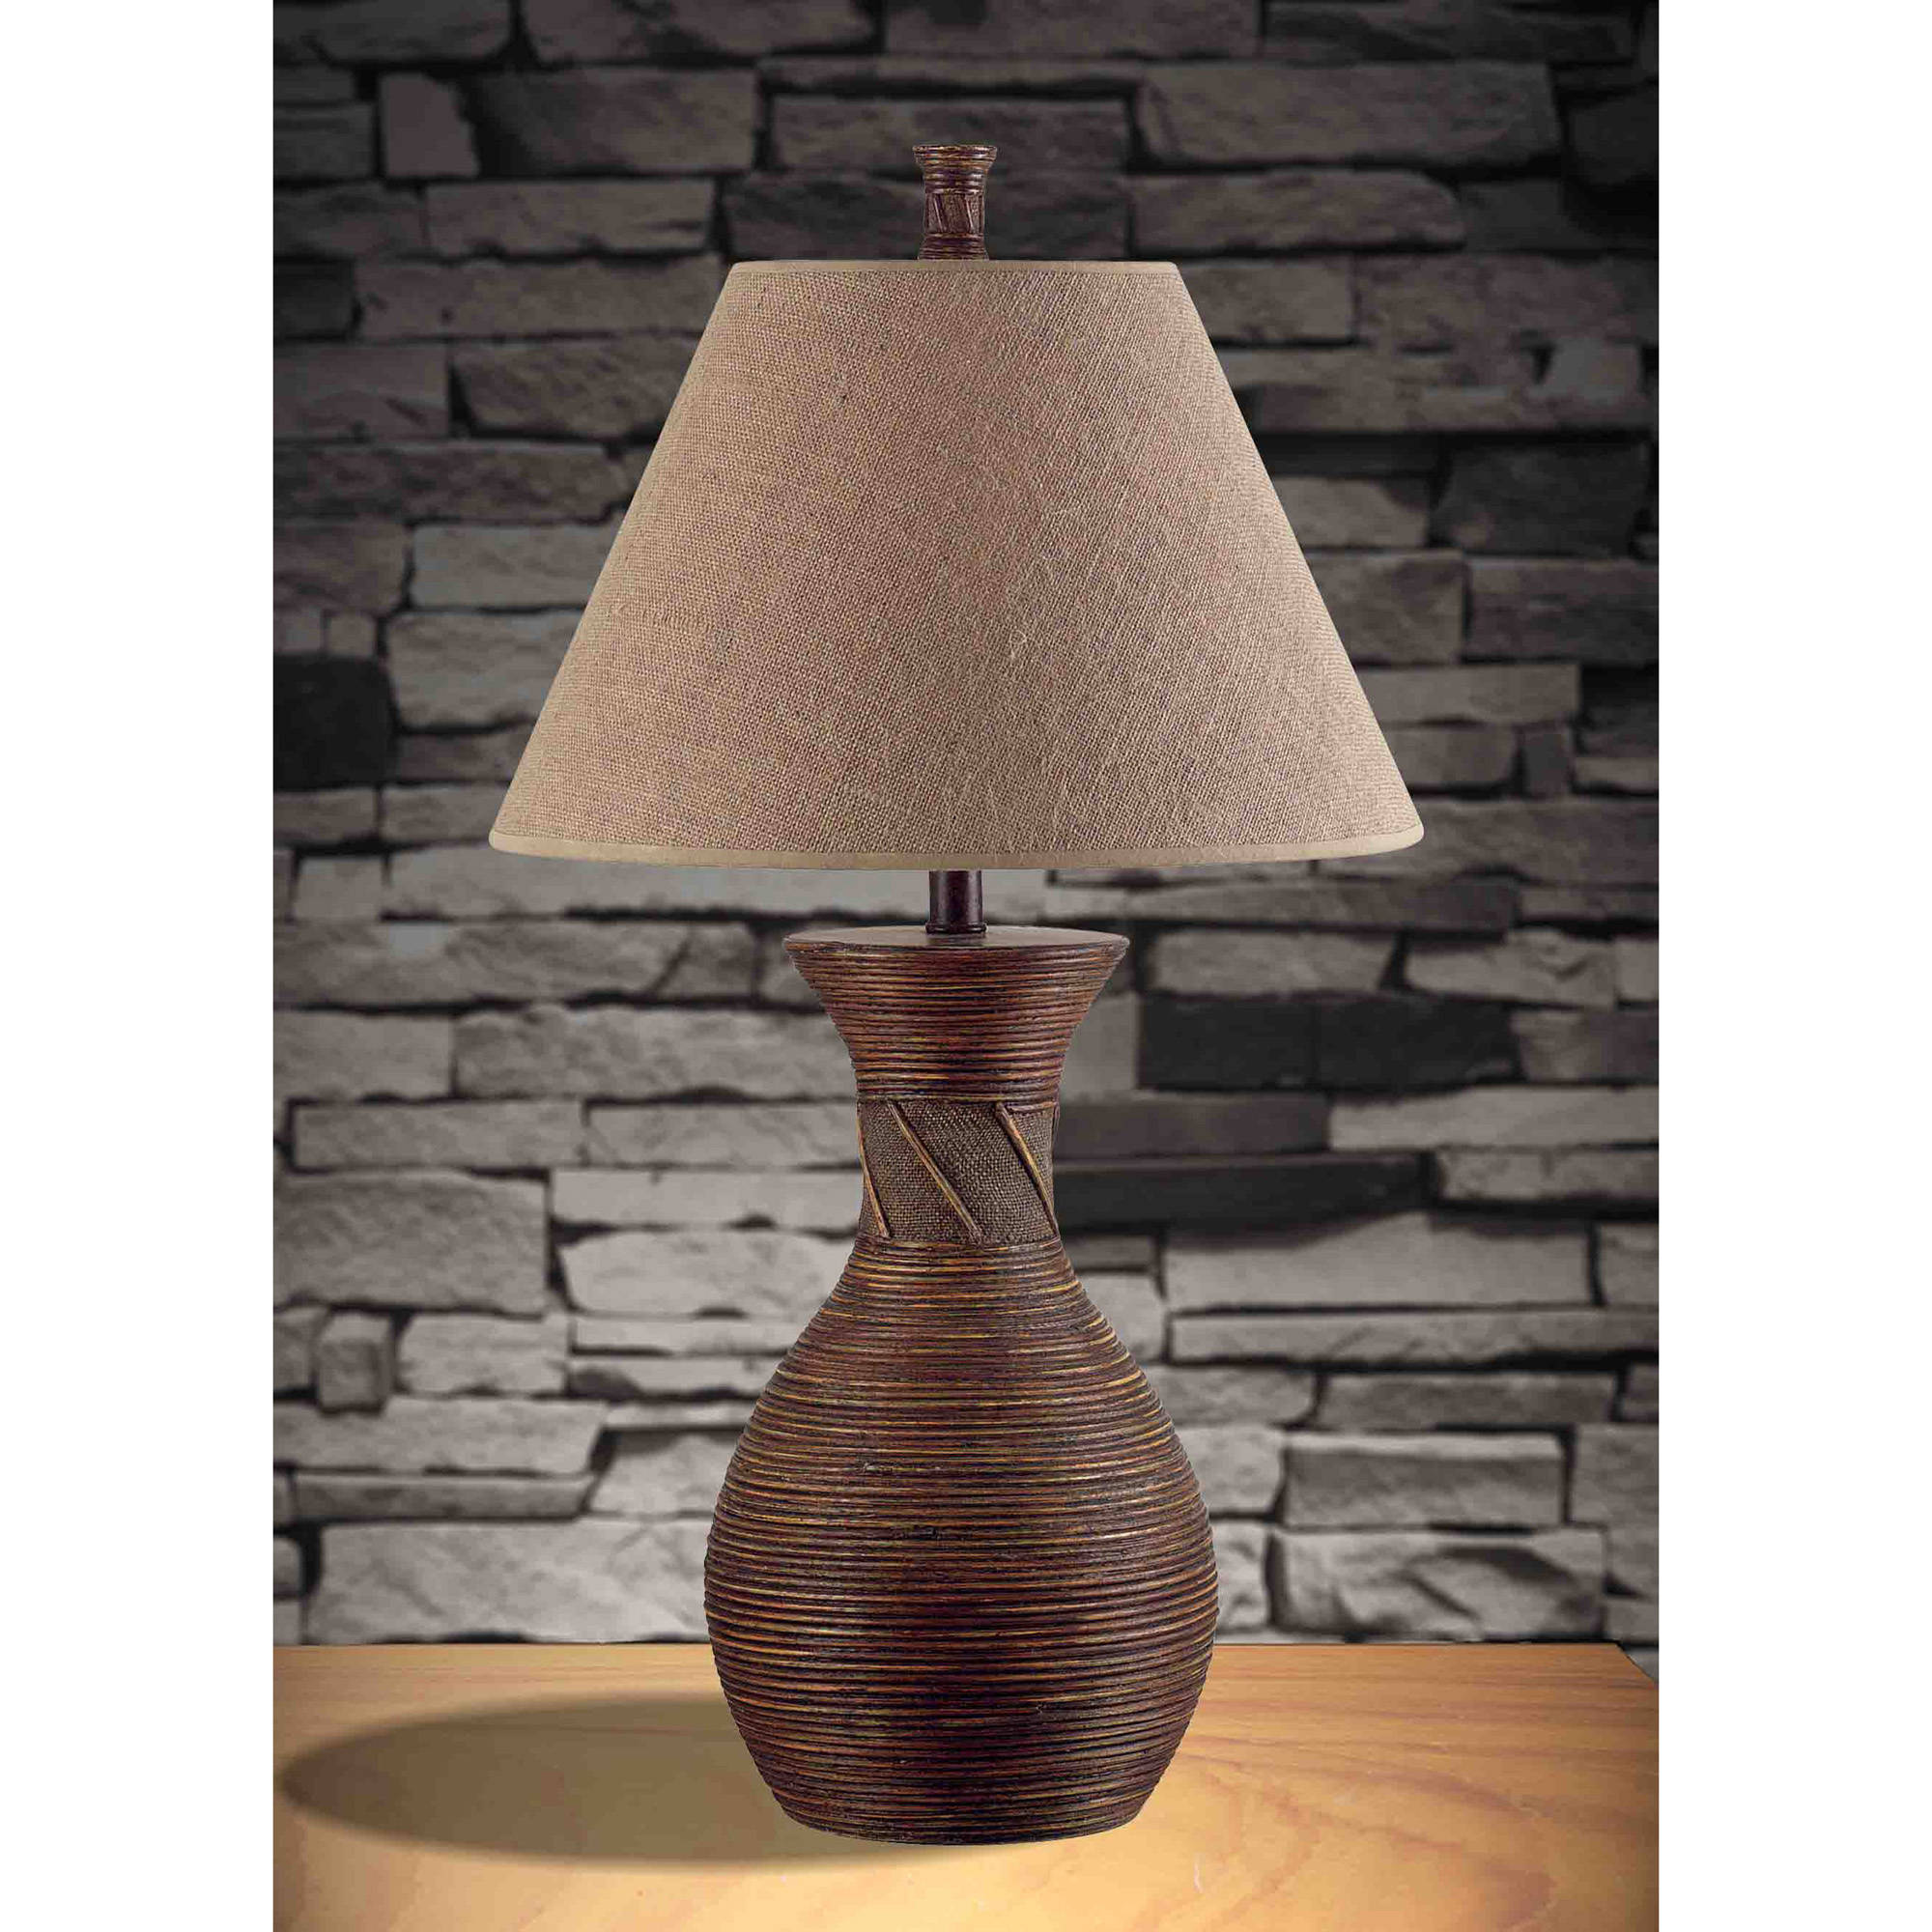 Kenroy Home Santiago Table Lamp, Natural Reed